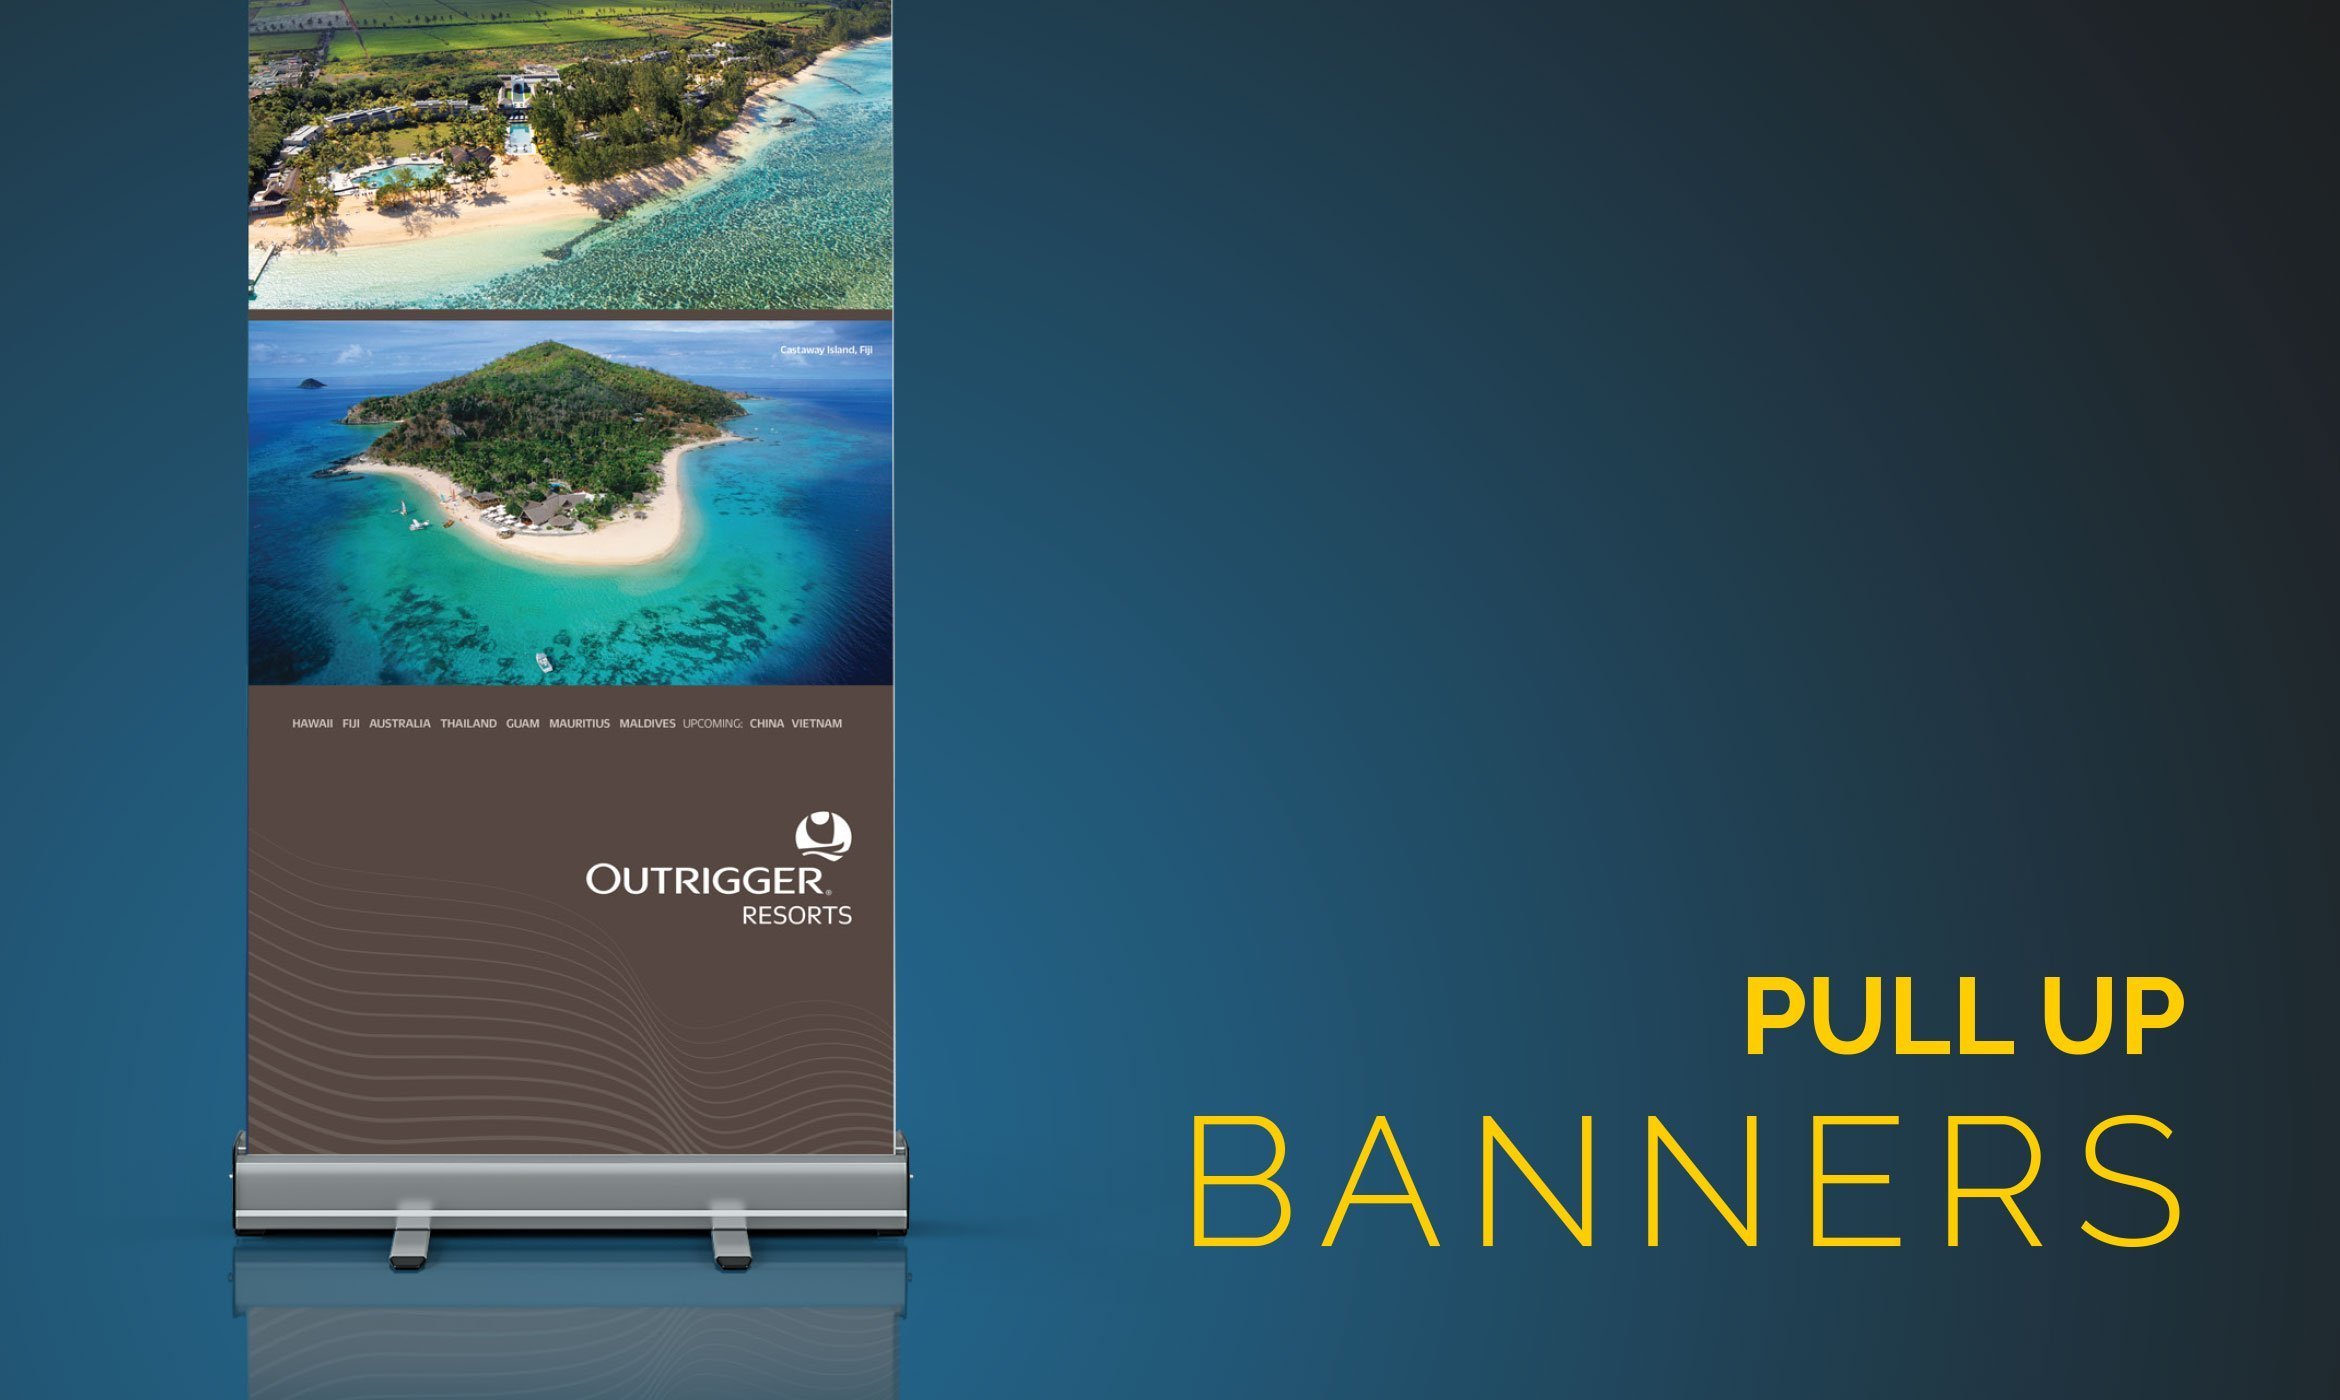 Pull Up Banners 1 - Home